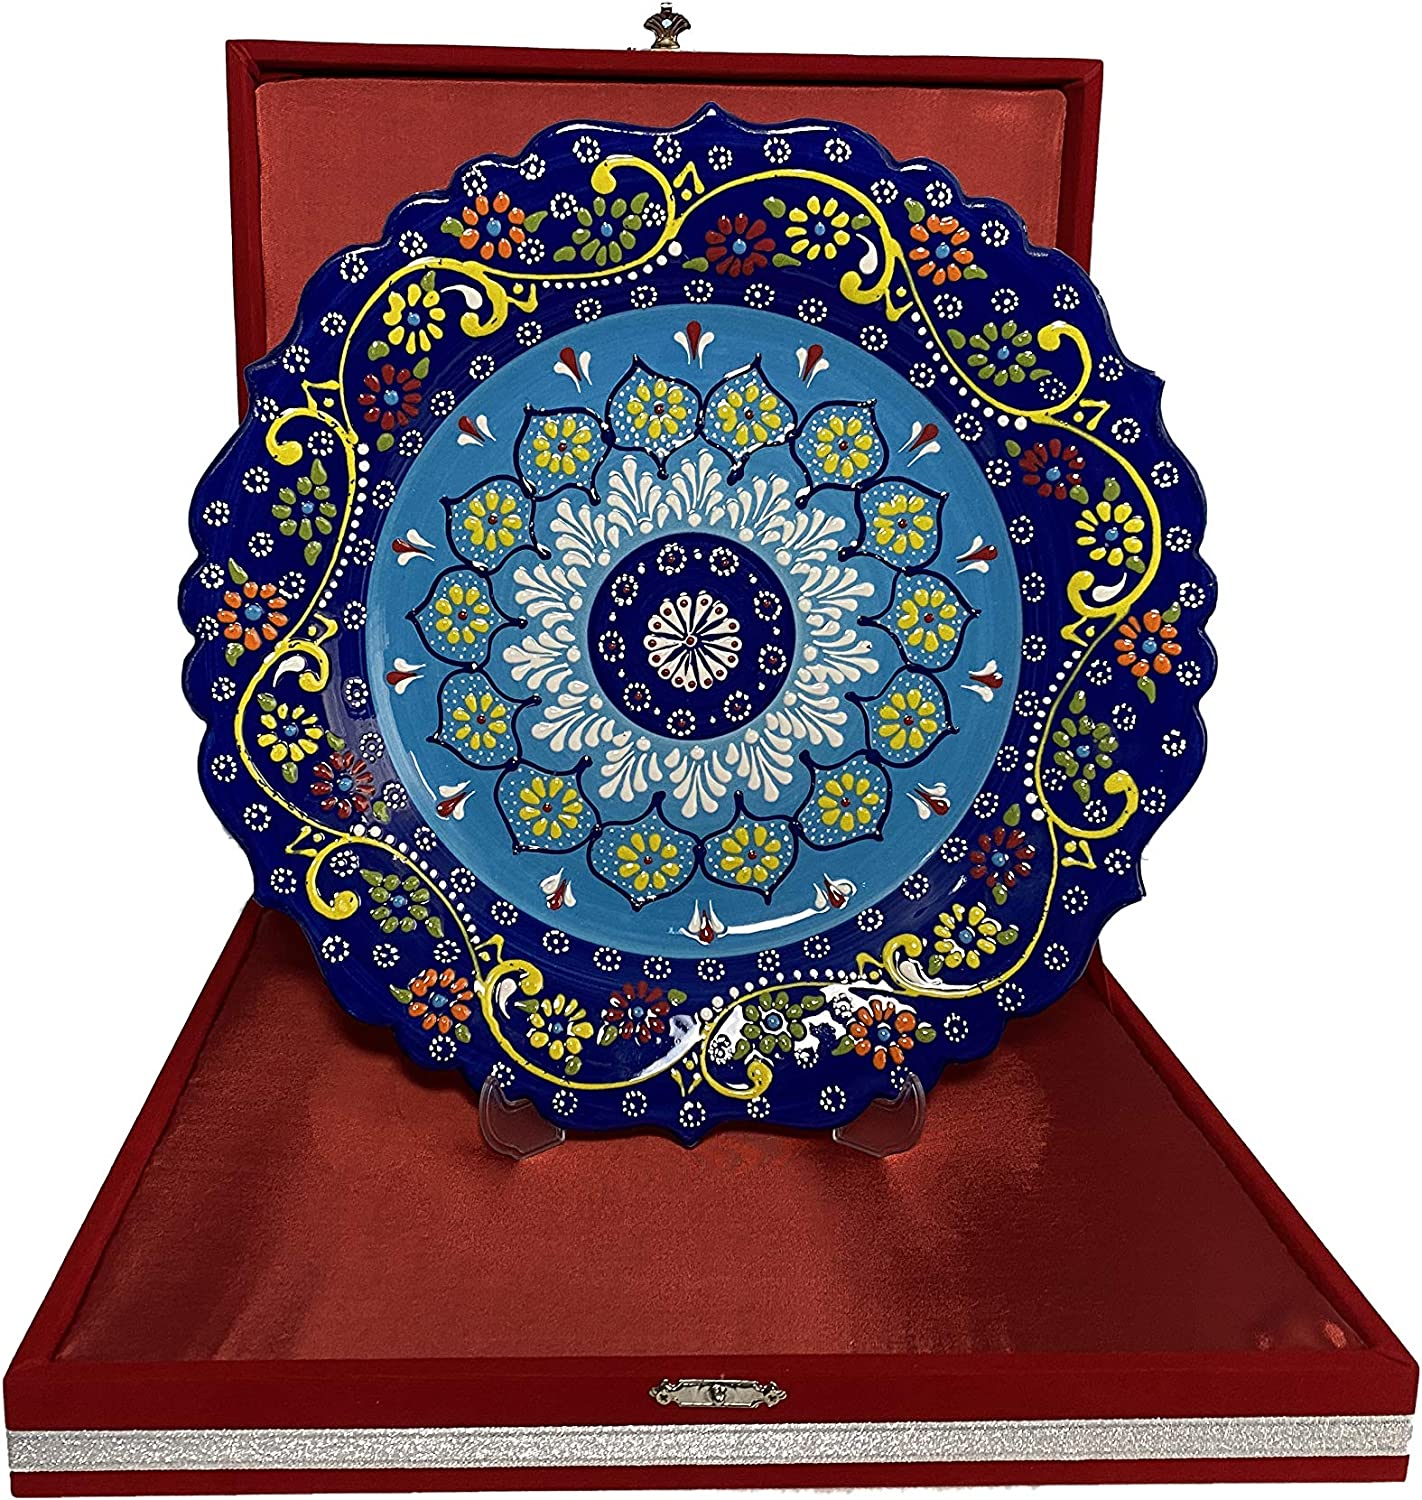 SCCM Porcelain Handmade Decorative Charger Plates for Display with Stand and Velvet Box Decorative Plates for Wall Hanging Home & Kitchen Decor Gifts (12.2 inch (31cm), Cerulean & Navy Blue)